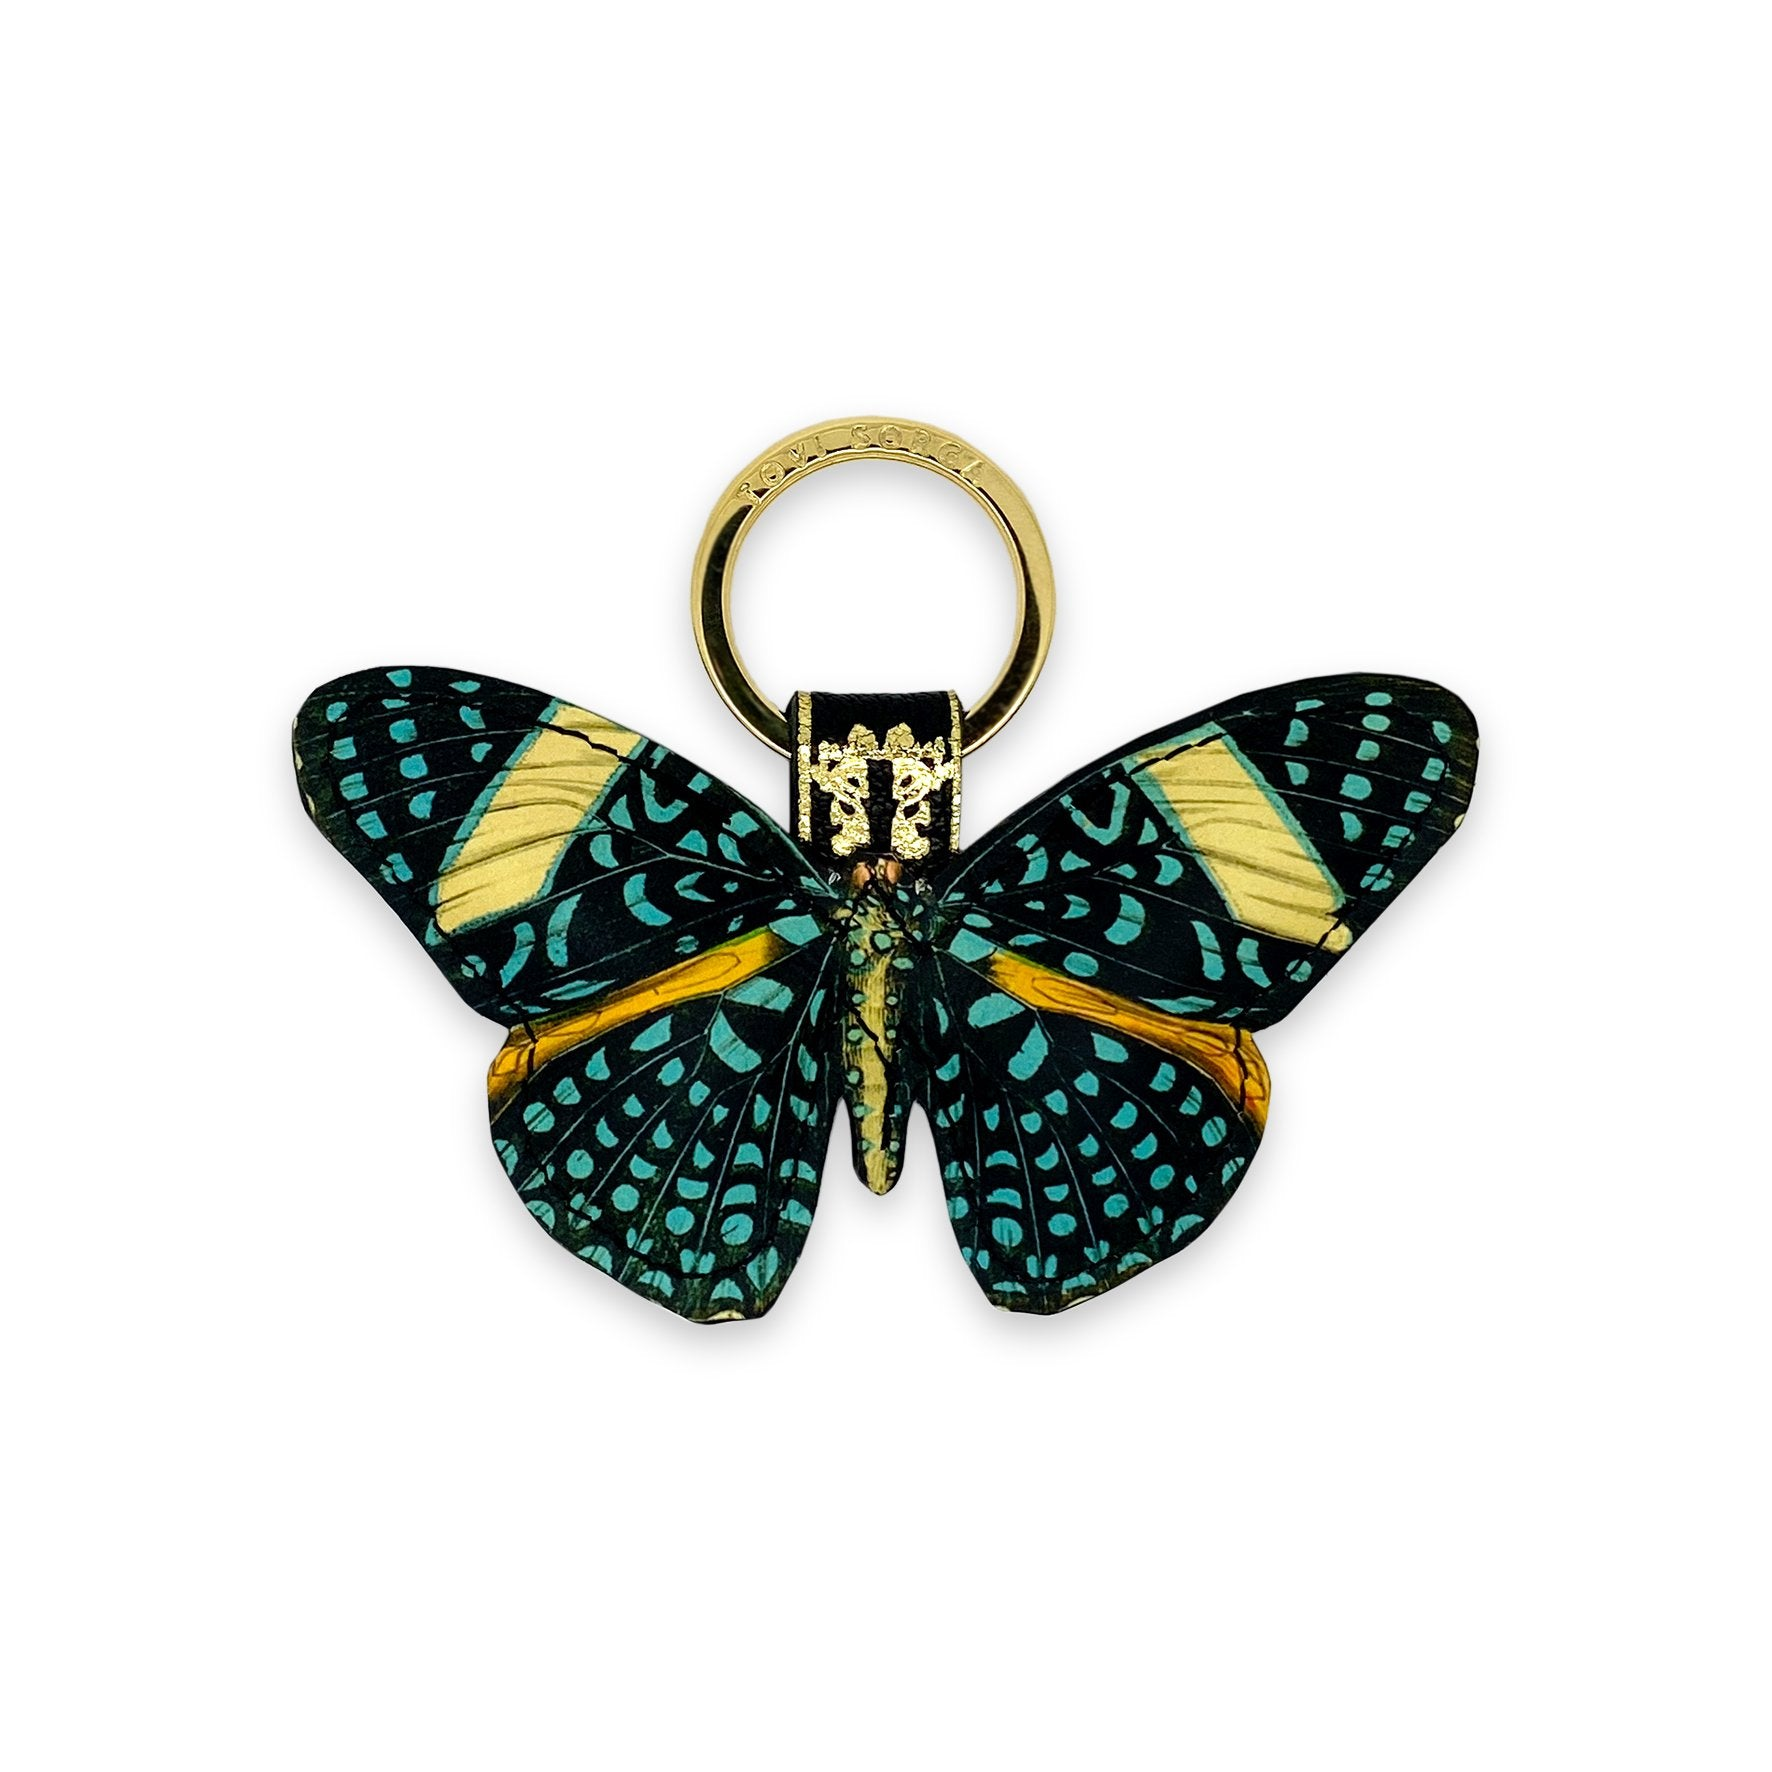 Leather Key Ring / Bag Charm - Speckled Gem Butterfly Key Ring / Bag Charm Tovi Sorga